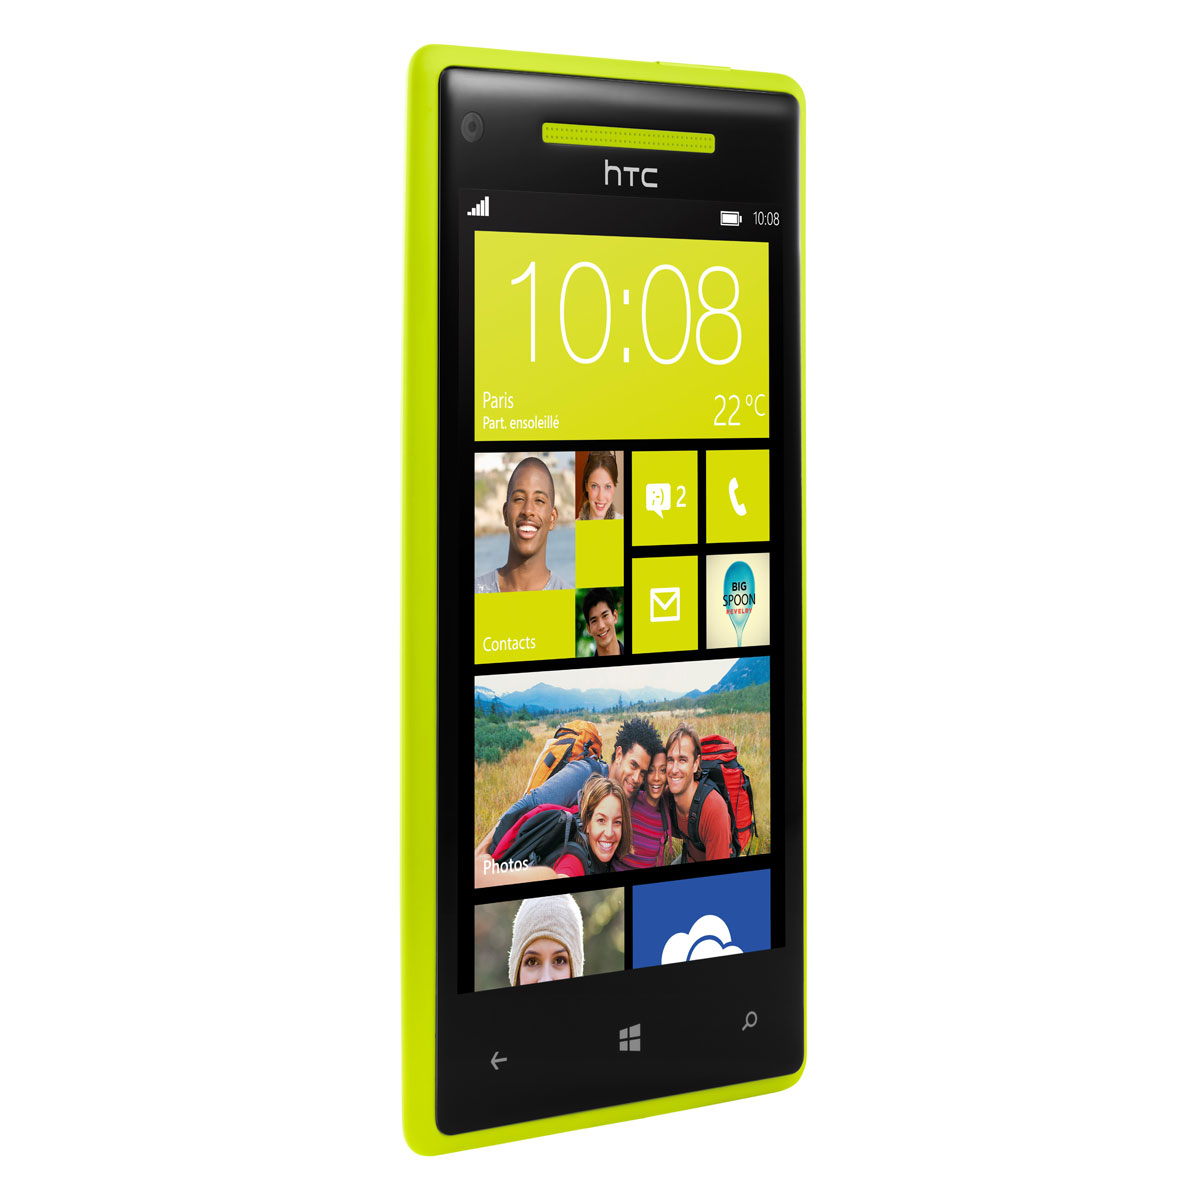 htc windows phone 8x jaune mobile smartphone htc sur. Black Bedroom Furniture Sets. Home Design Ideas